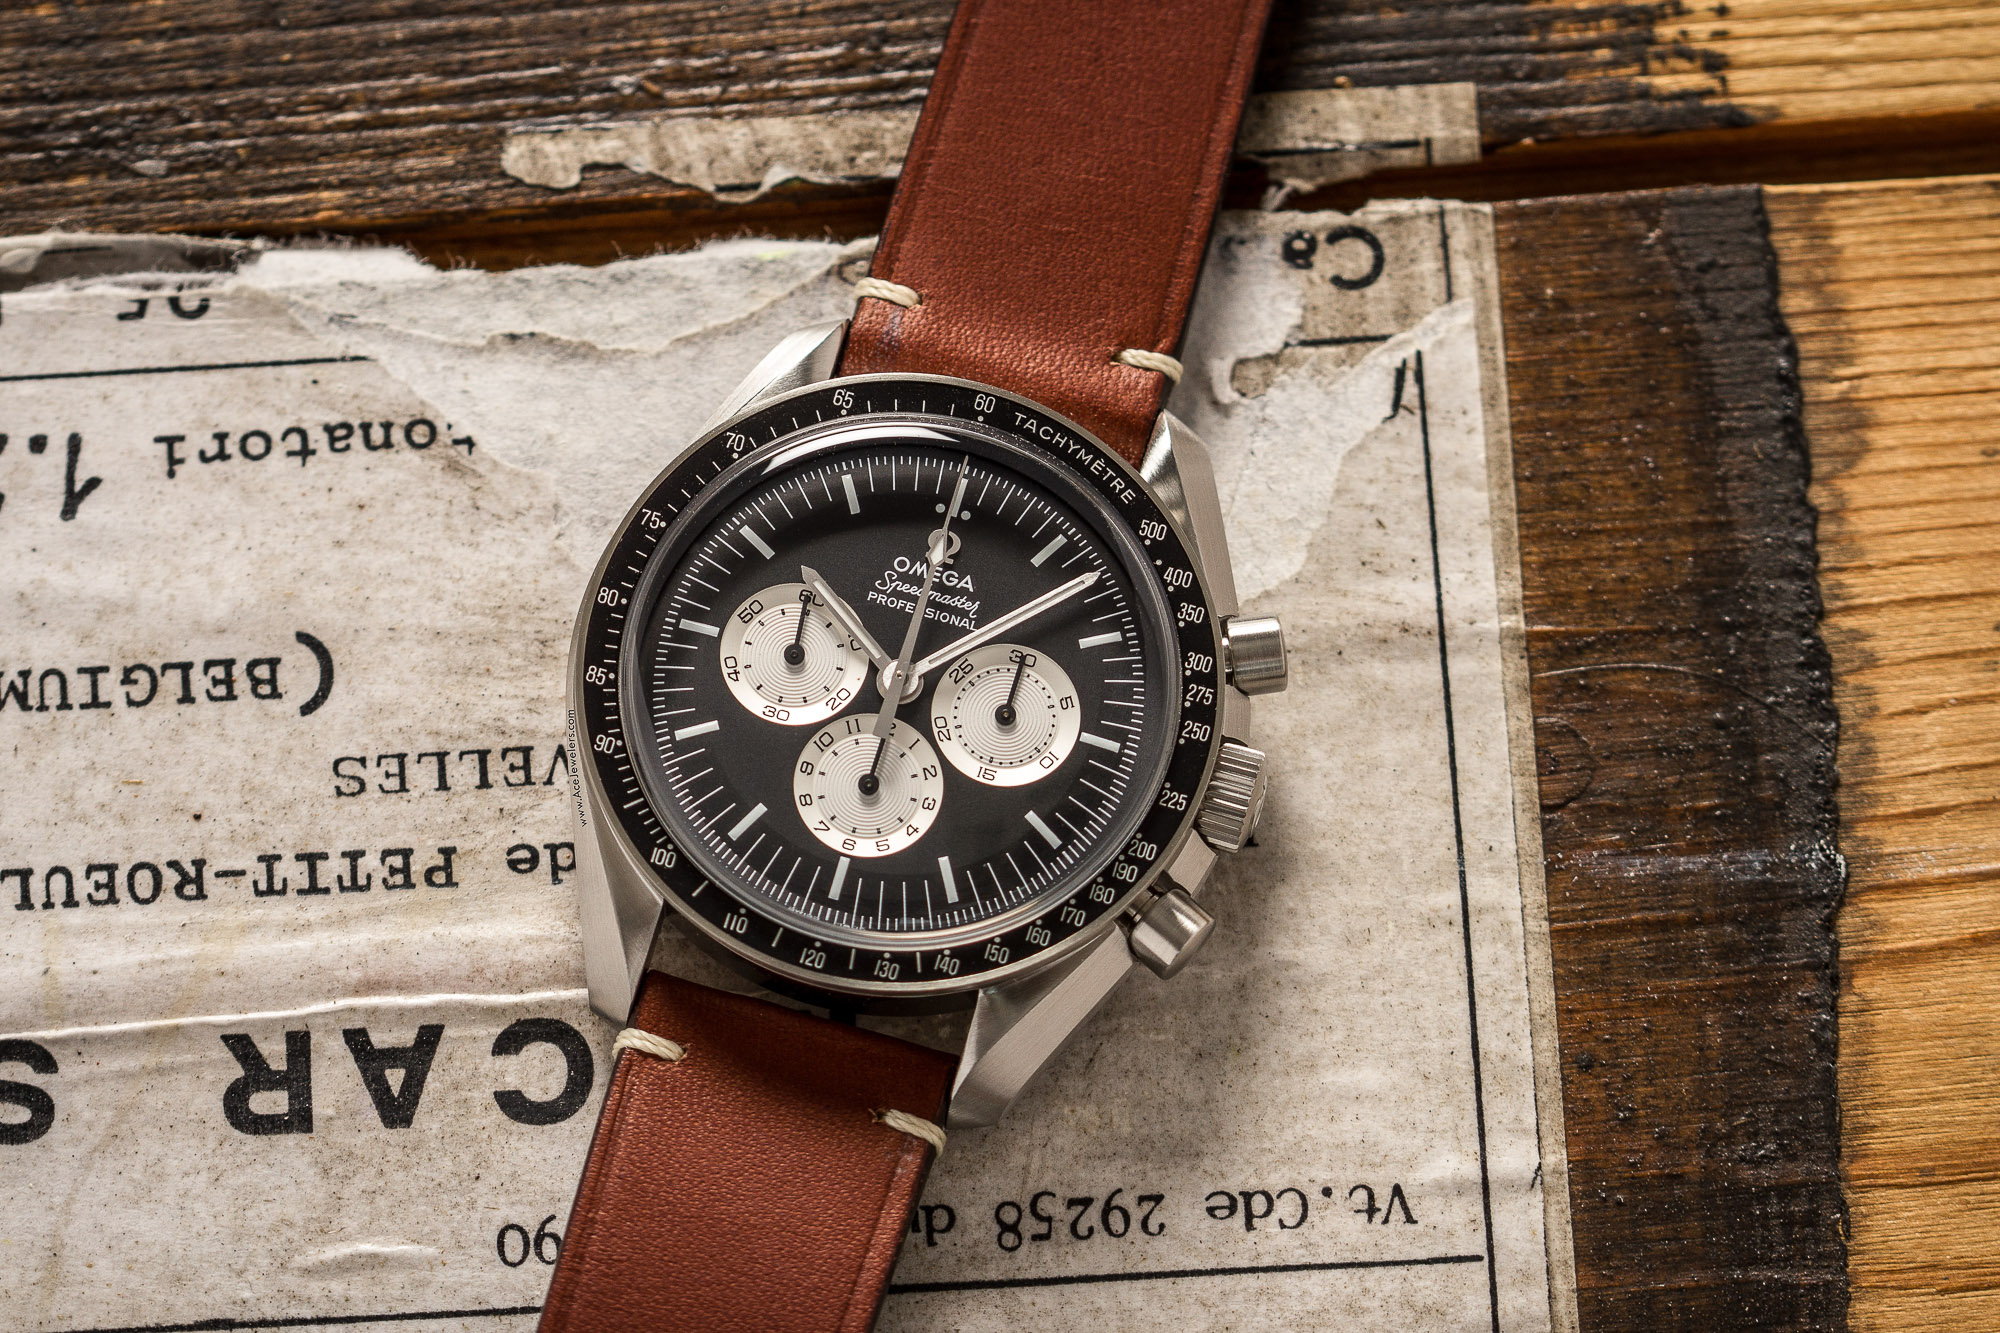 Omega Speedmaster Professional #SpeedyTuesday 311.32.42.30.01.001